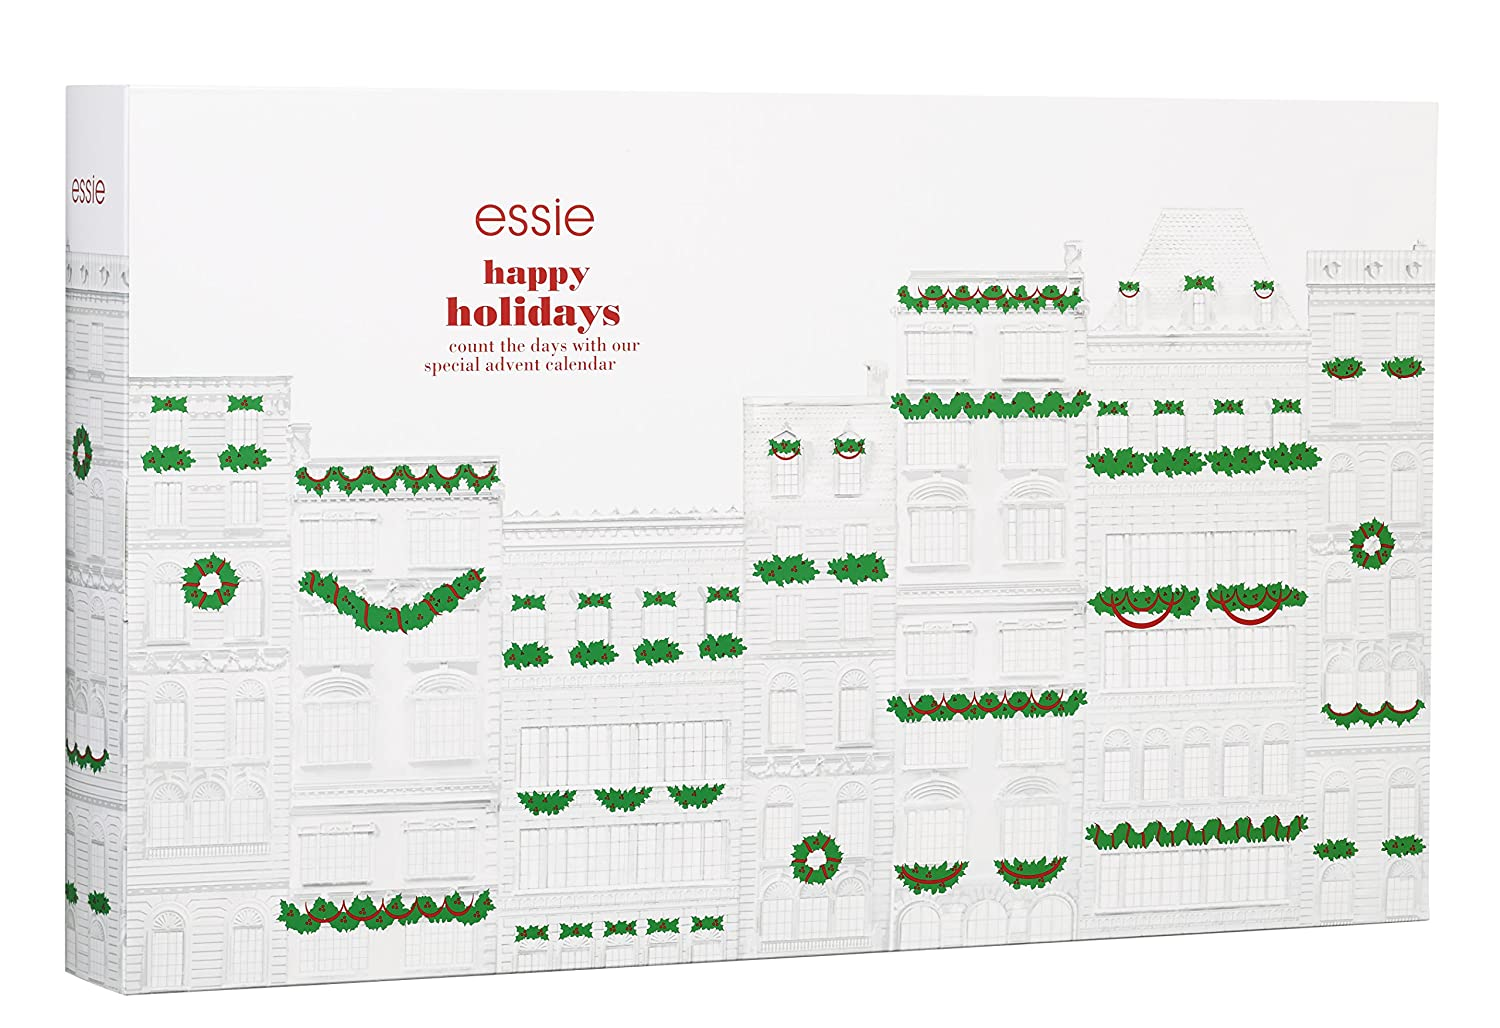 Essie Advent Calendar 2016, Pack of 1 (1 x 24 Items): Amazon.co.uk ...